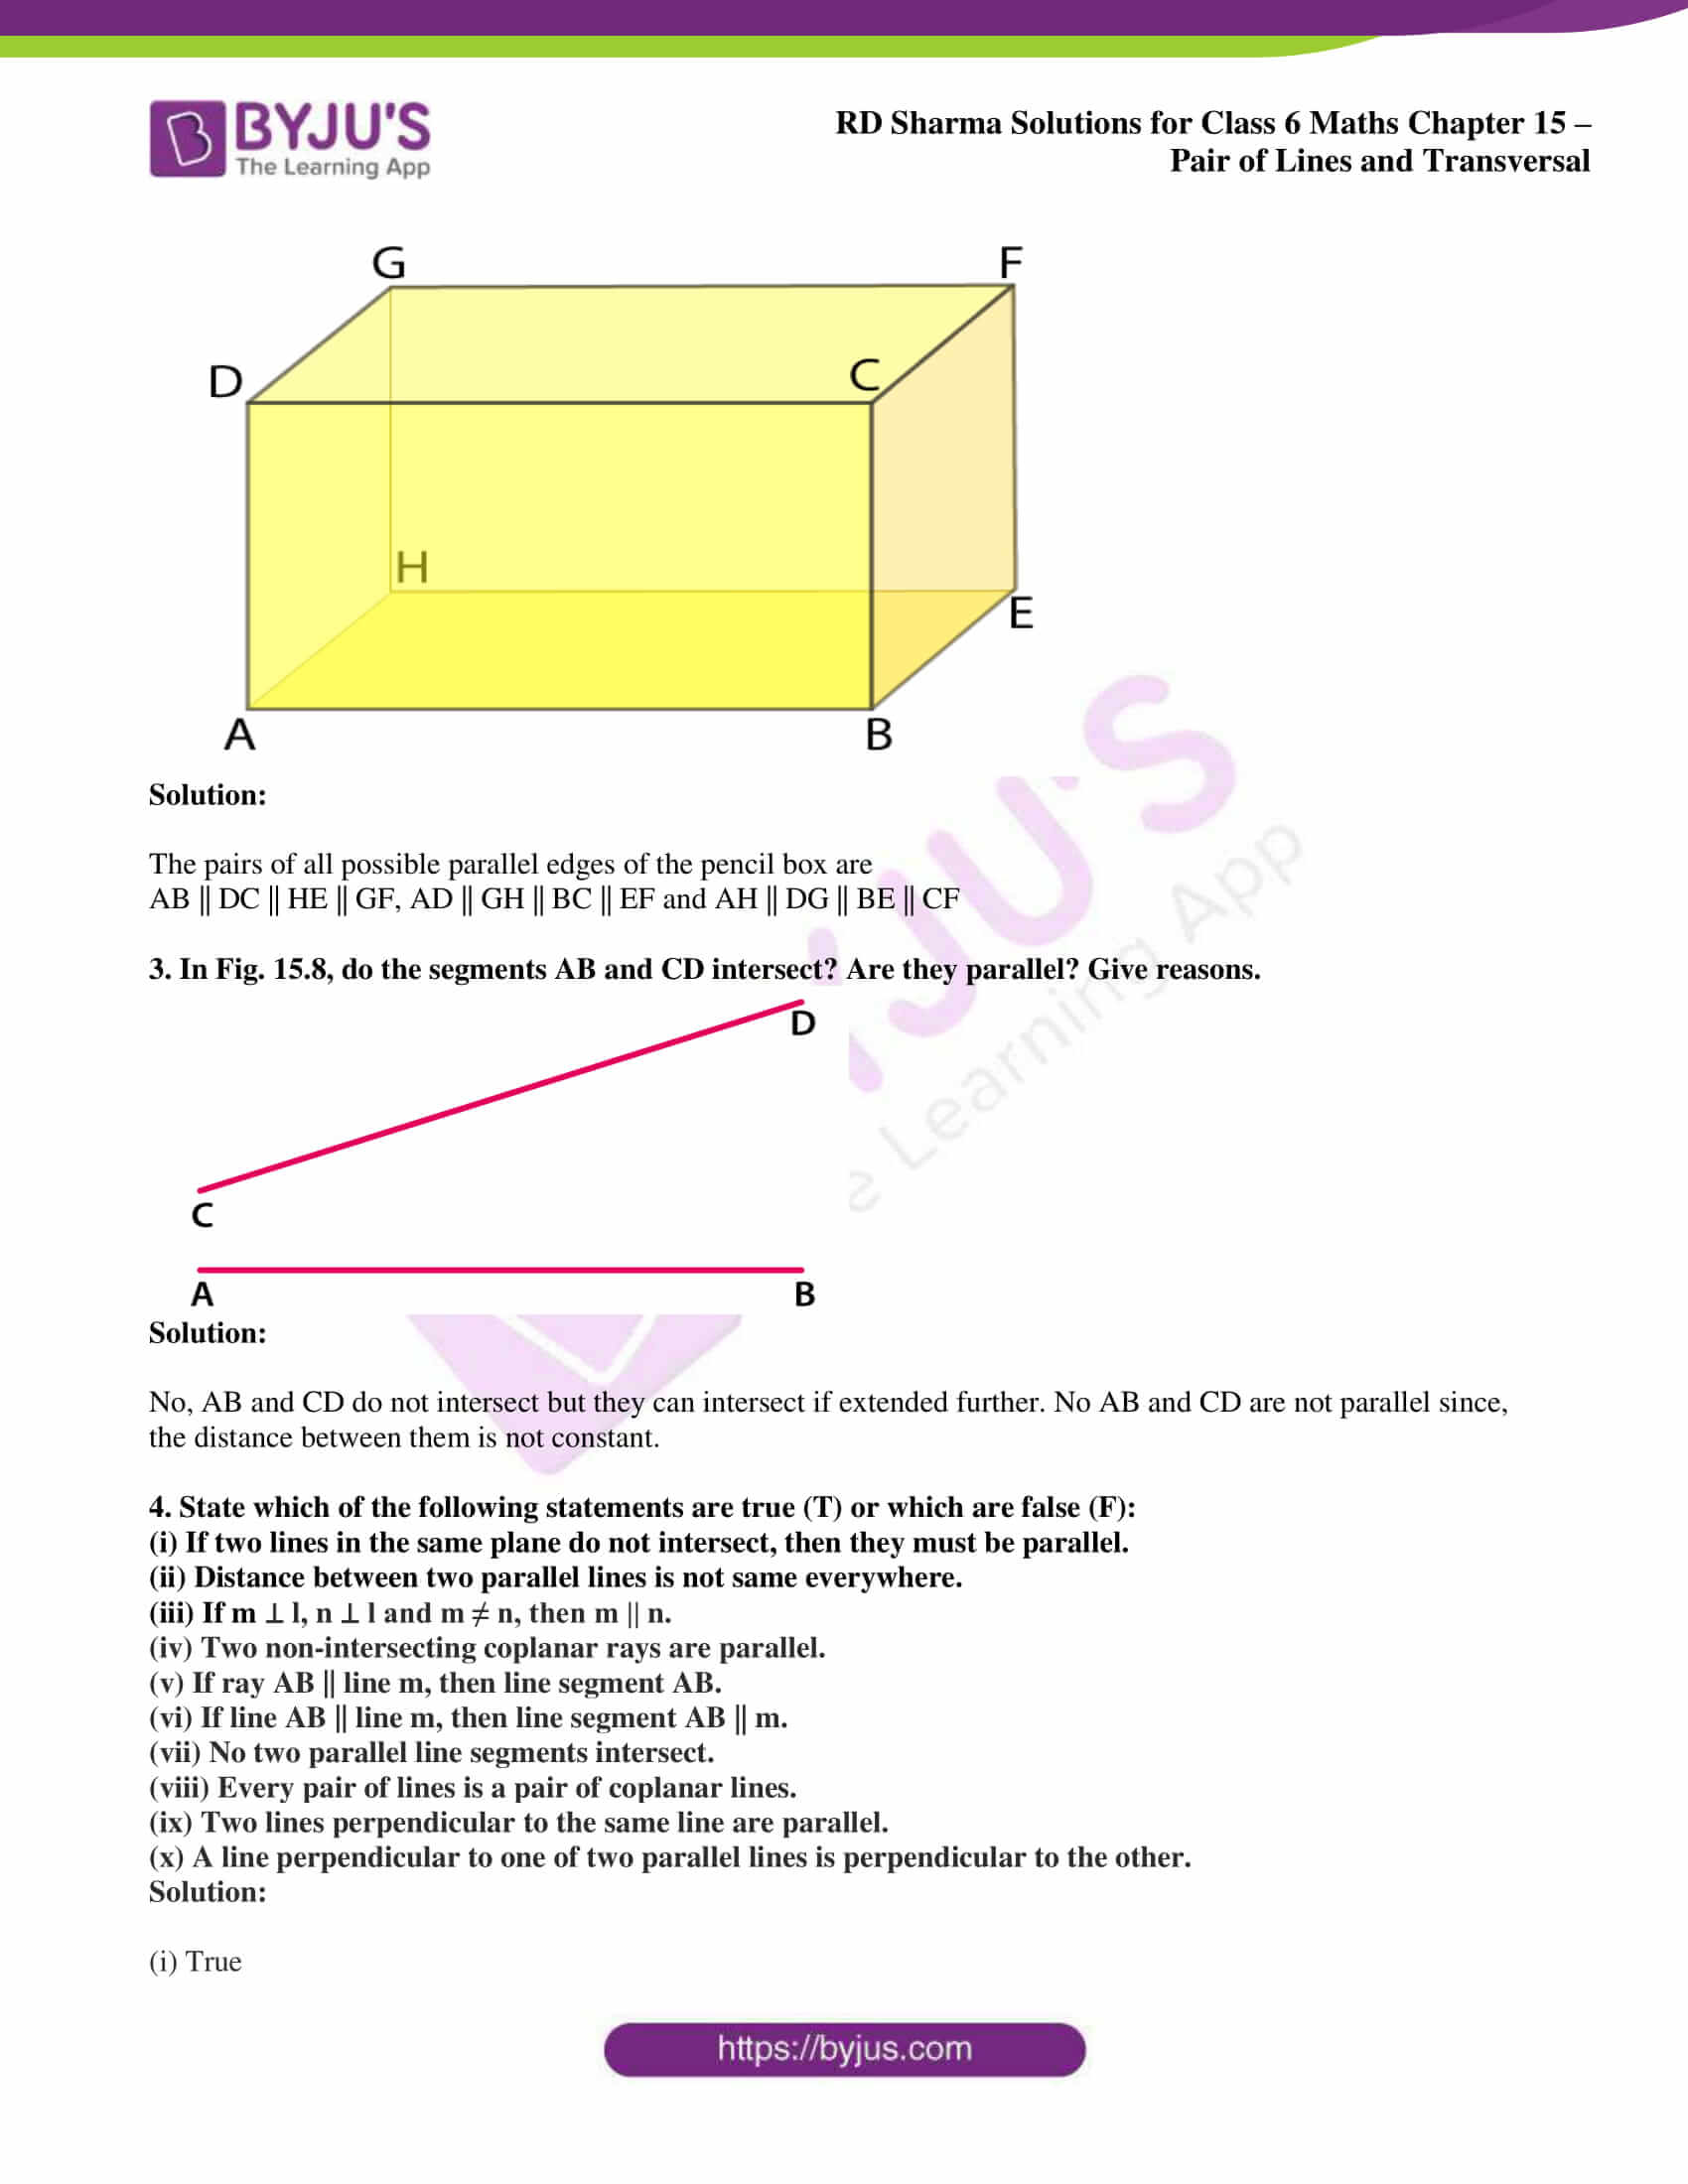 rd sharma solutions nov2020 class 6 maths chapter 15 exercise 1 2